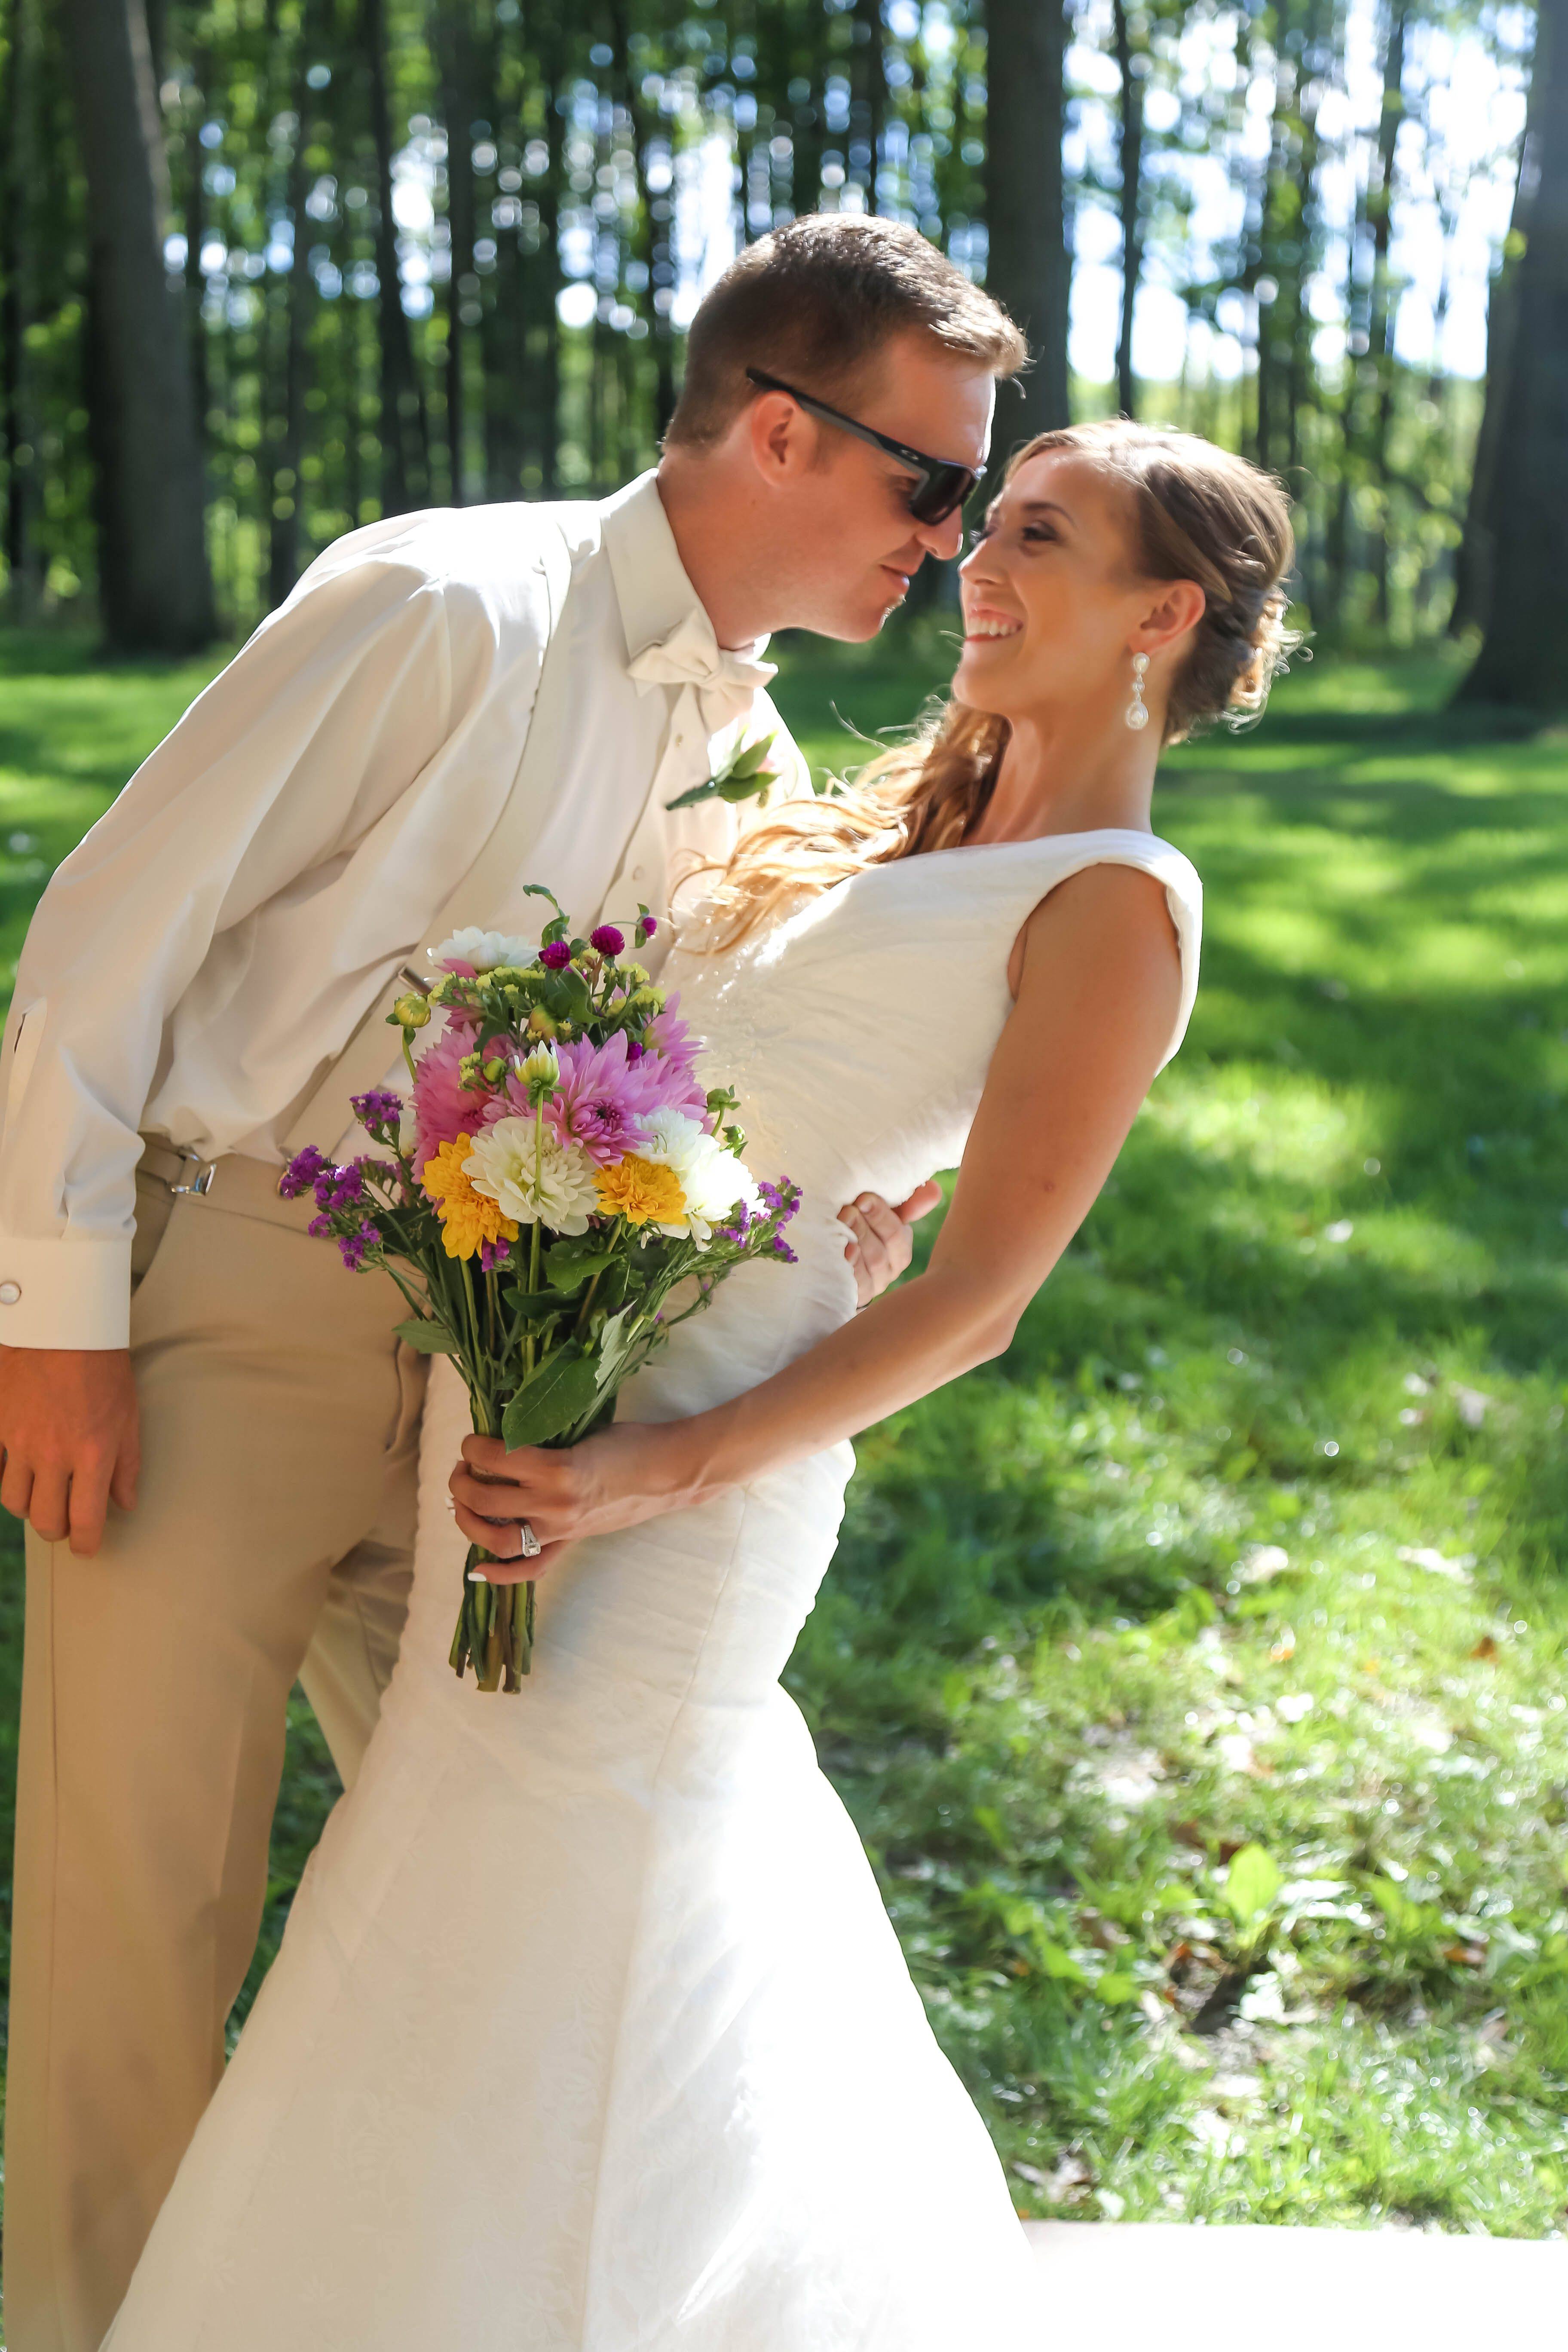 Love and sunshine captured in this couple picture   Dixon's wedding venue, Chippewa Valley, WI